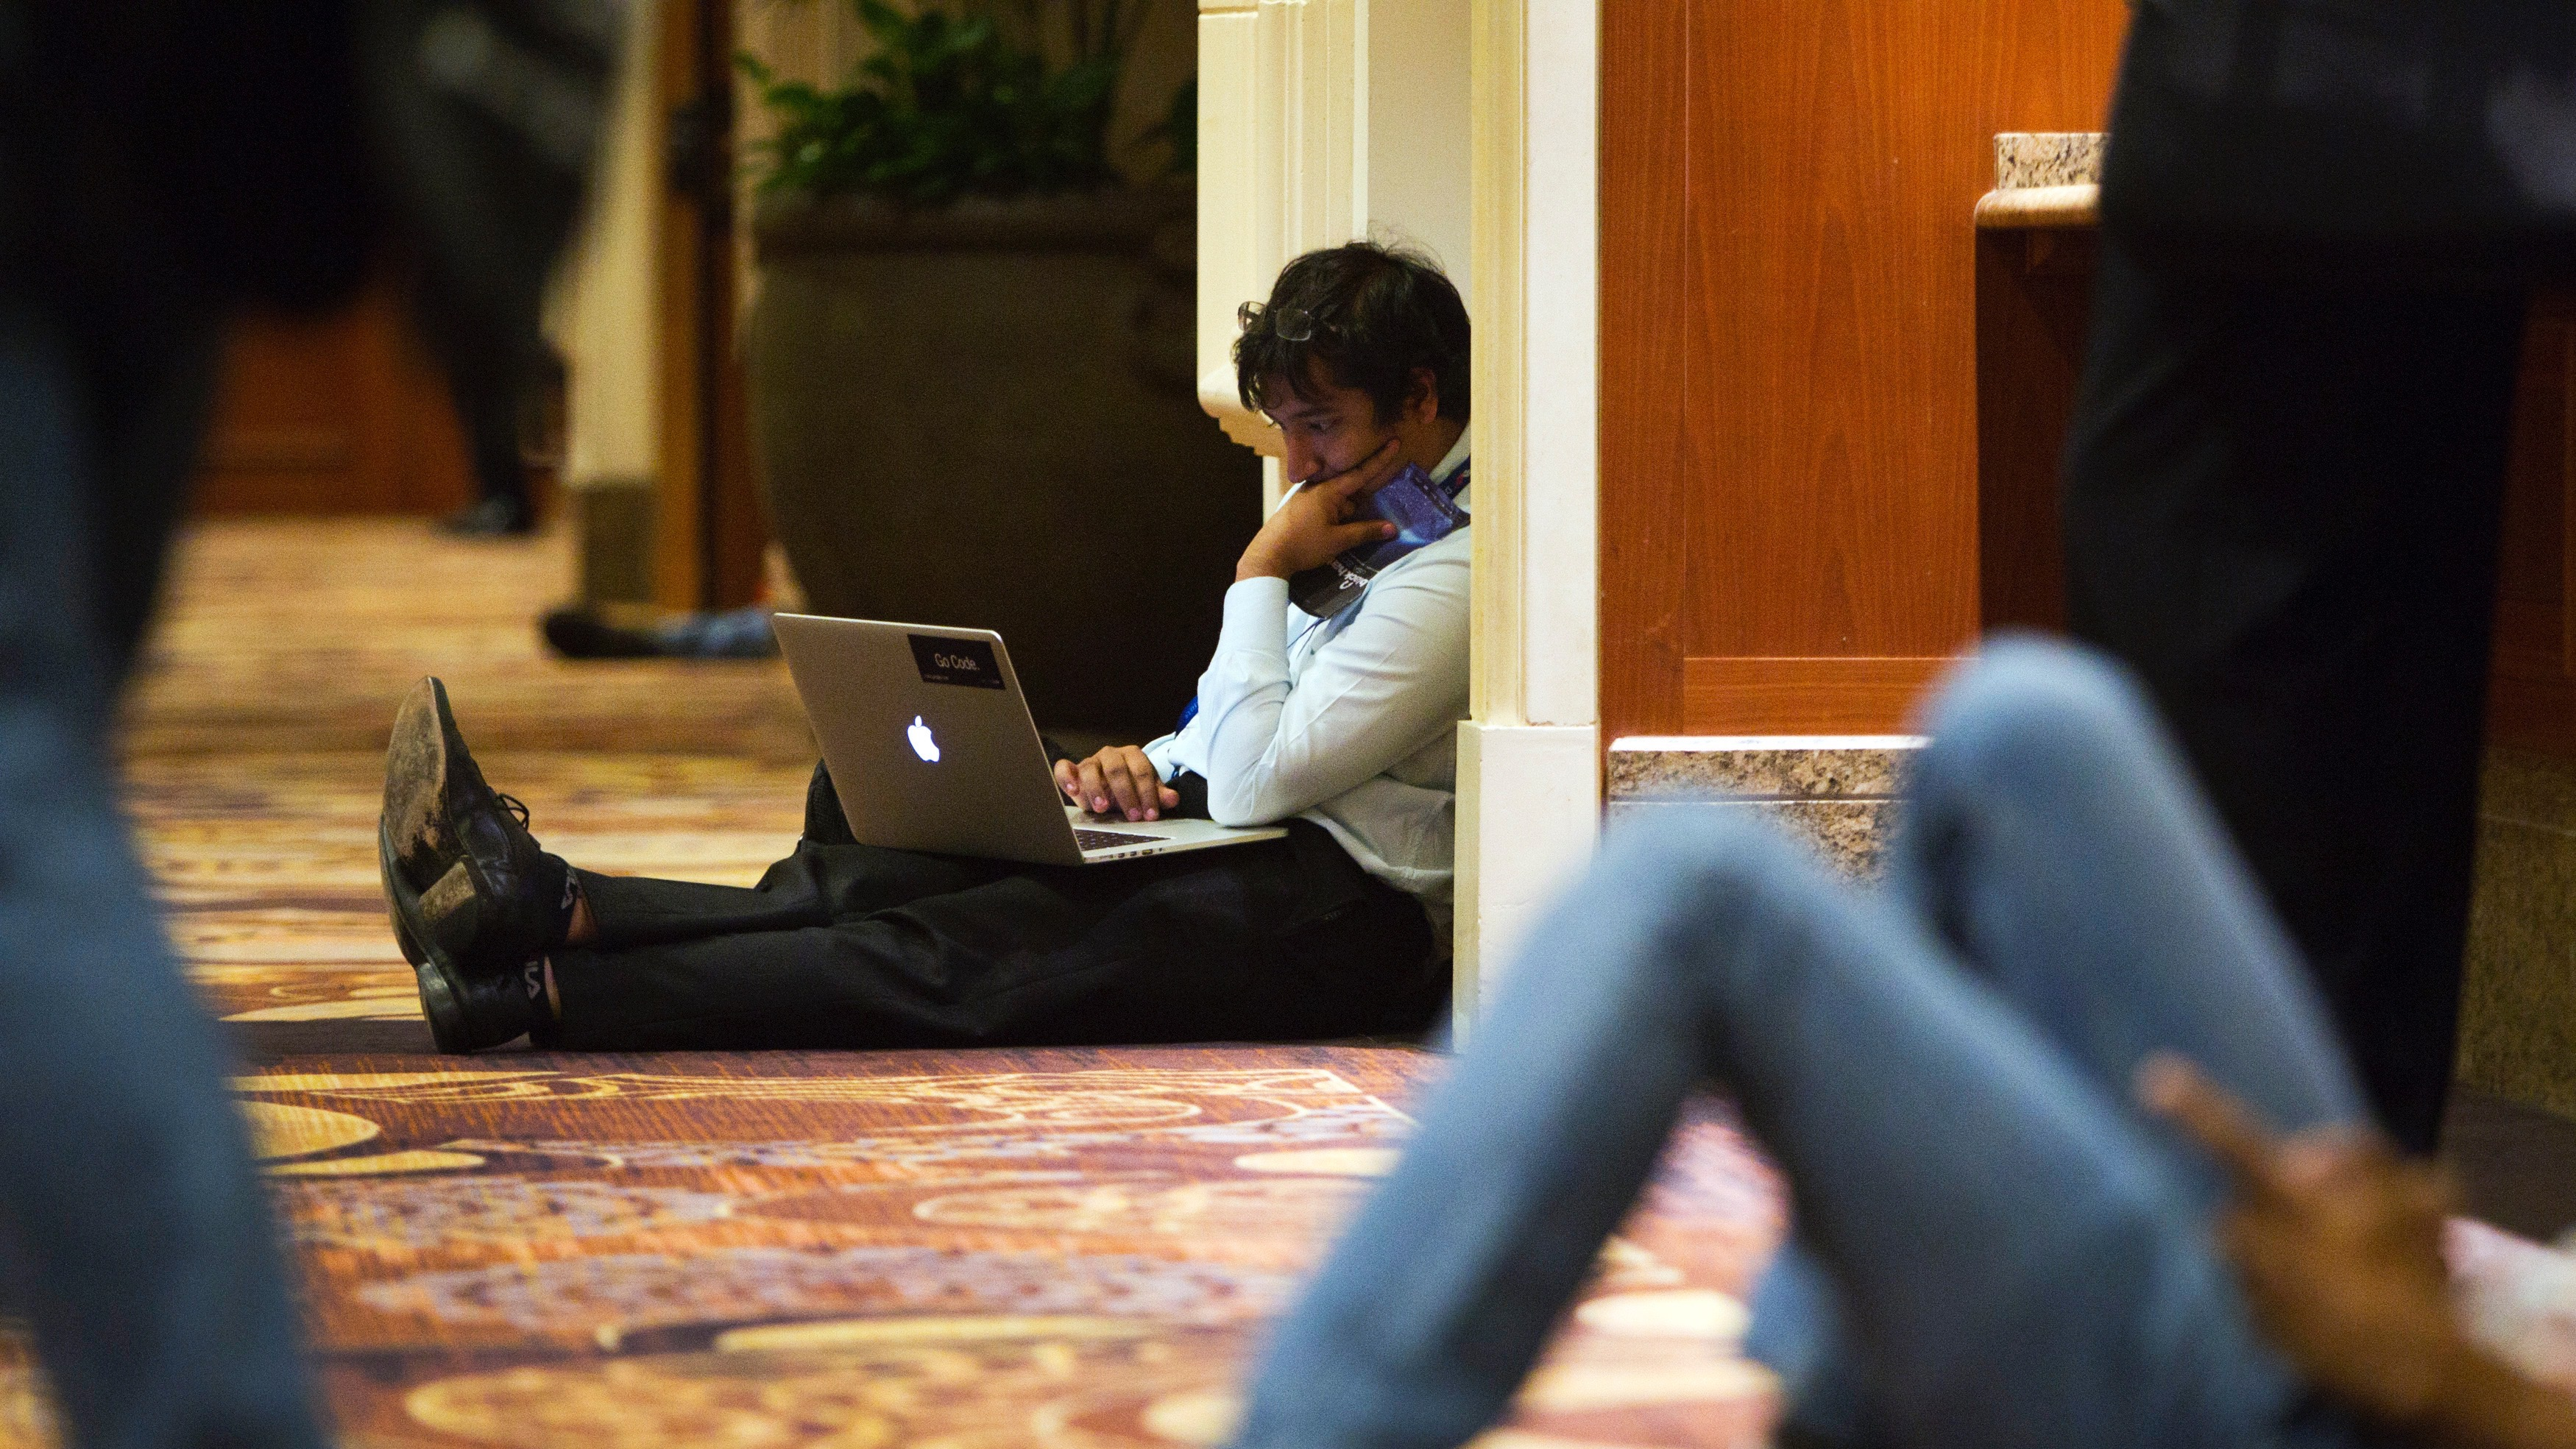 Utkarsh Sanghi, a security engineer at Google, works in a hallway during the Black Hat USA 2014 hacker conference at the Mandalay Bay Convention Center in Las Vegas, Nevada August 6, 2014. REUTERS/Steve Marcus (UNITED STATES - Tags: SCIENCE TECHNOLOGY POLITICS BUSINESS) - RTR41HX3